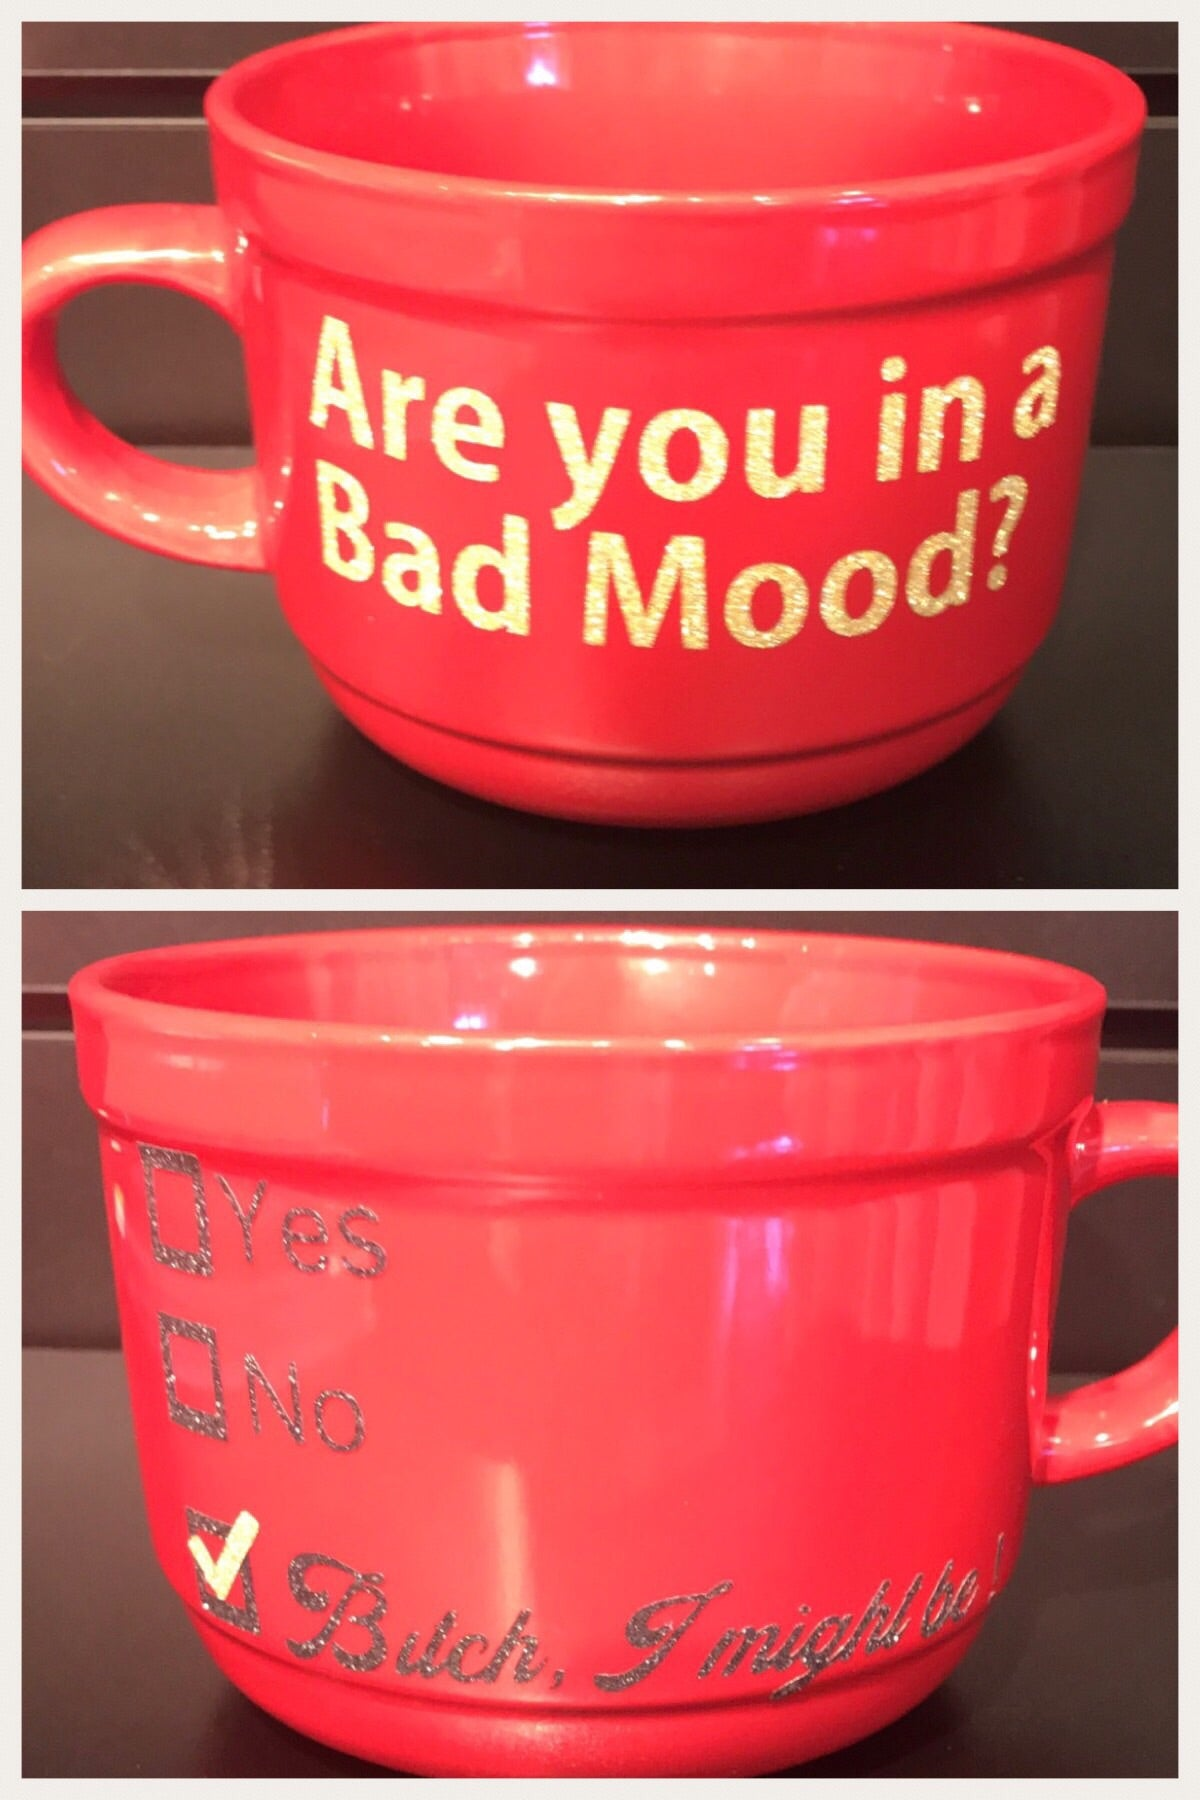 ARE YOU IN A BAD MOOD